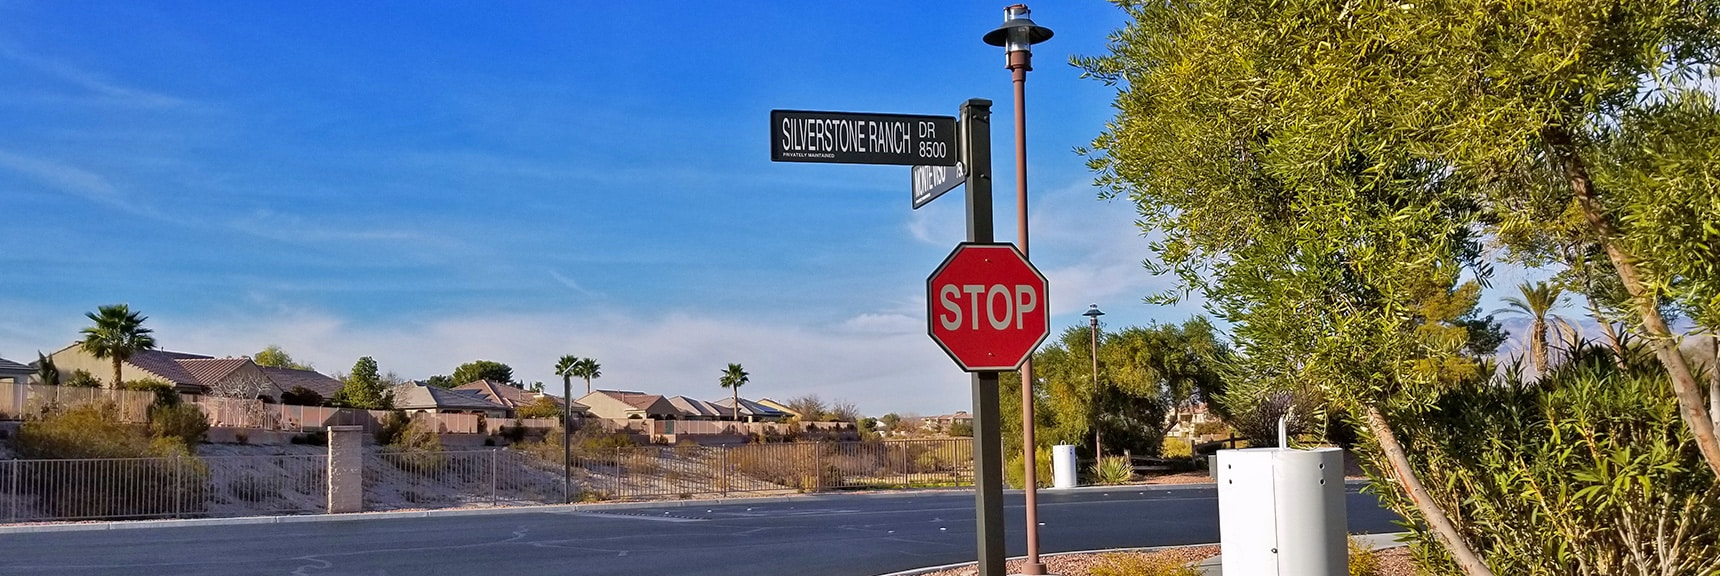 Silverstone Ranch Dr and Monte Viso Dr. Entrance of Palms Estates | Snapshot of Las Vegas Northern Growth Edge on January 3, 2021